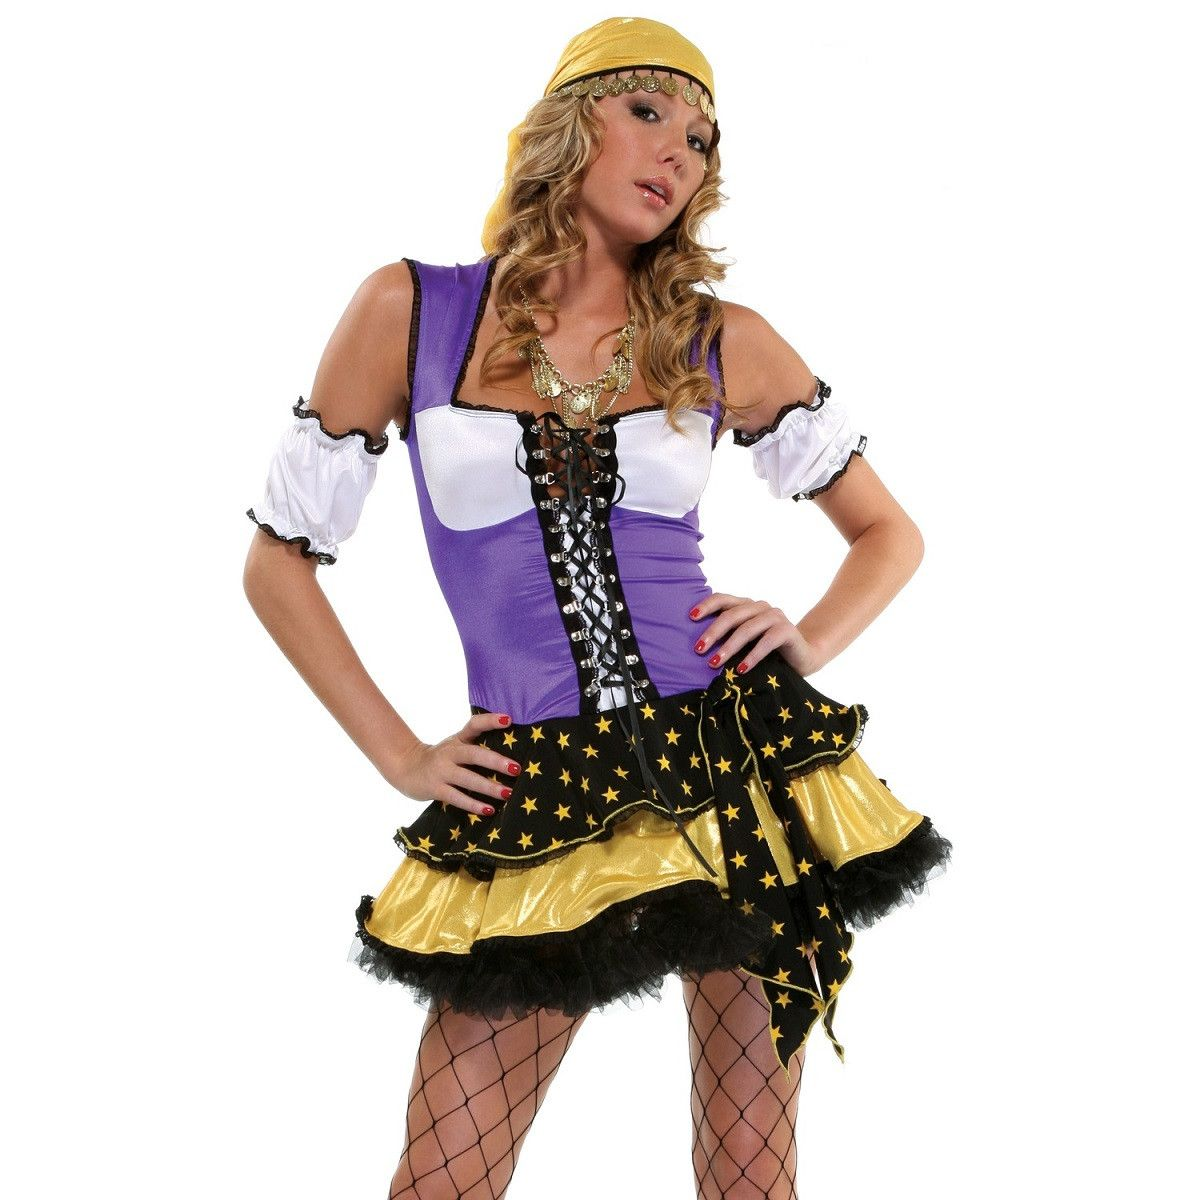 Fortune teller fancy dress for <span class=money>€49.95 EUR</span> at Flirtywomen